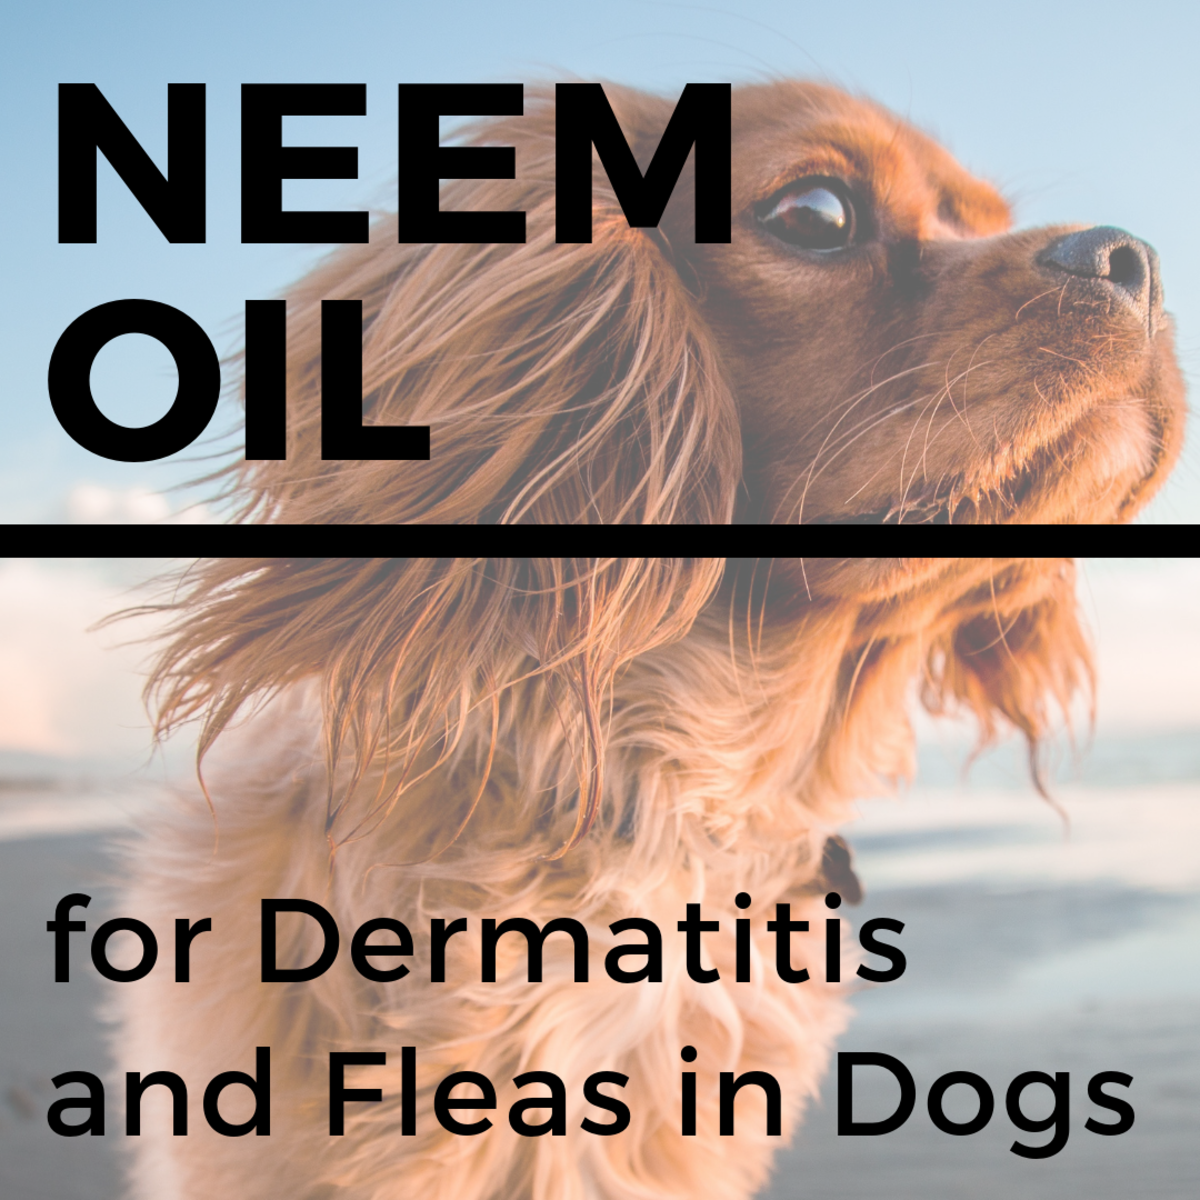 Neem Oil for Dogs Stops Itching, Heals Skin, and Repels Fleas and Mosquitos